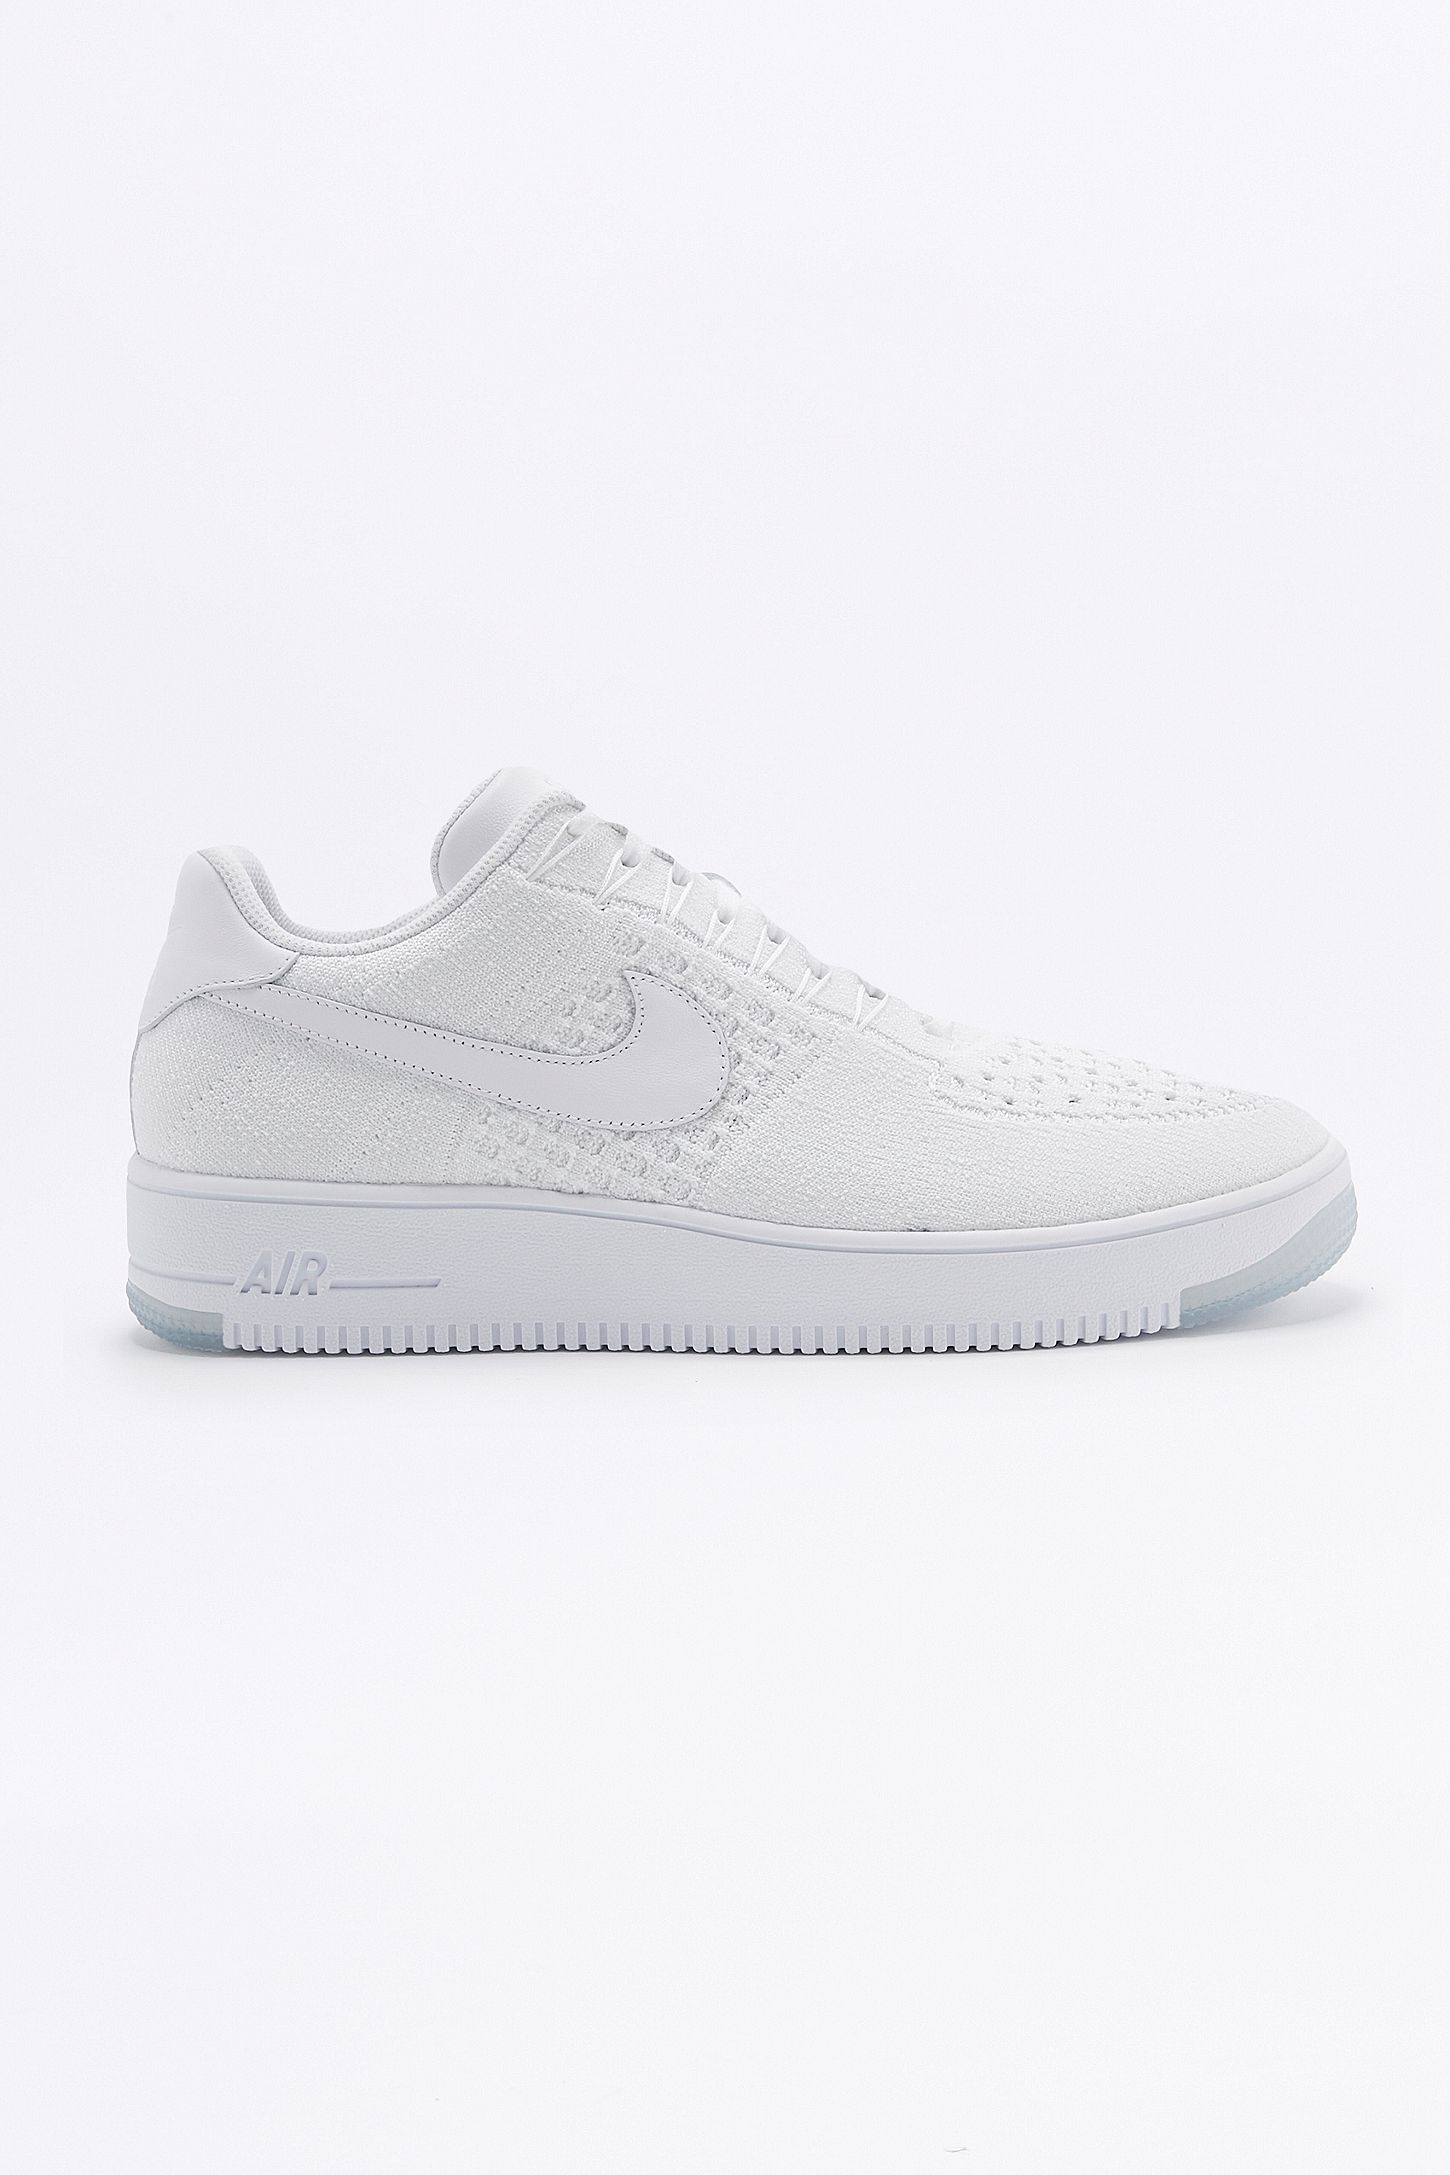 new product e6783 42e9c Nike Air Force 1 Flyknit Low White Trainers. Click on image to zoom. Hover  to zoom. Double Tap to Zoom